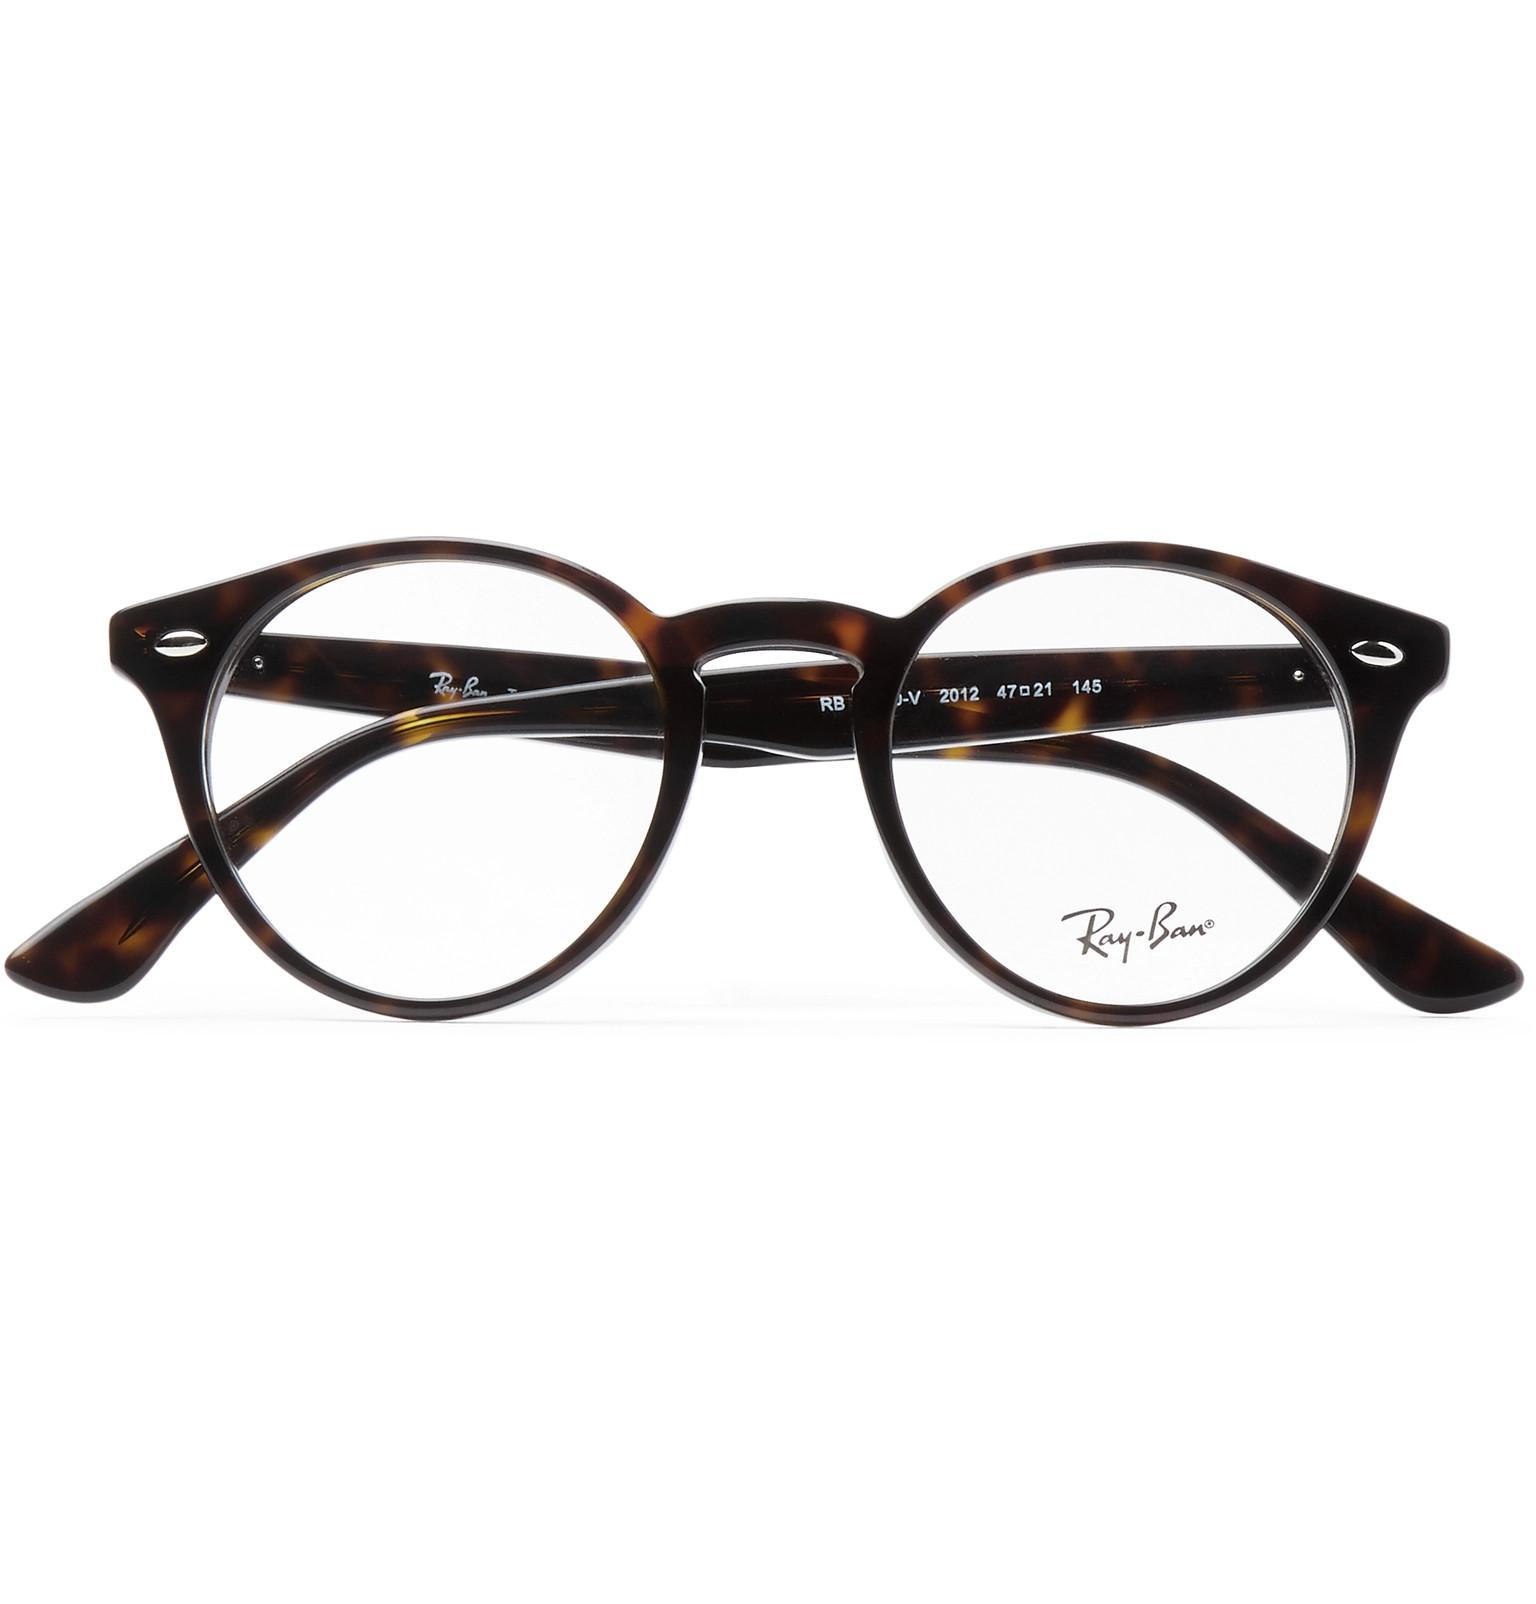 dd022b44b4 ... authentic ray ban round frame tortoiseshell acetate optical glasses for men  lyst de657 e3c2b